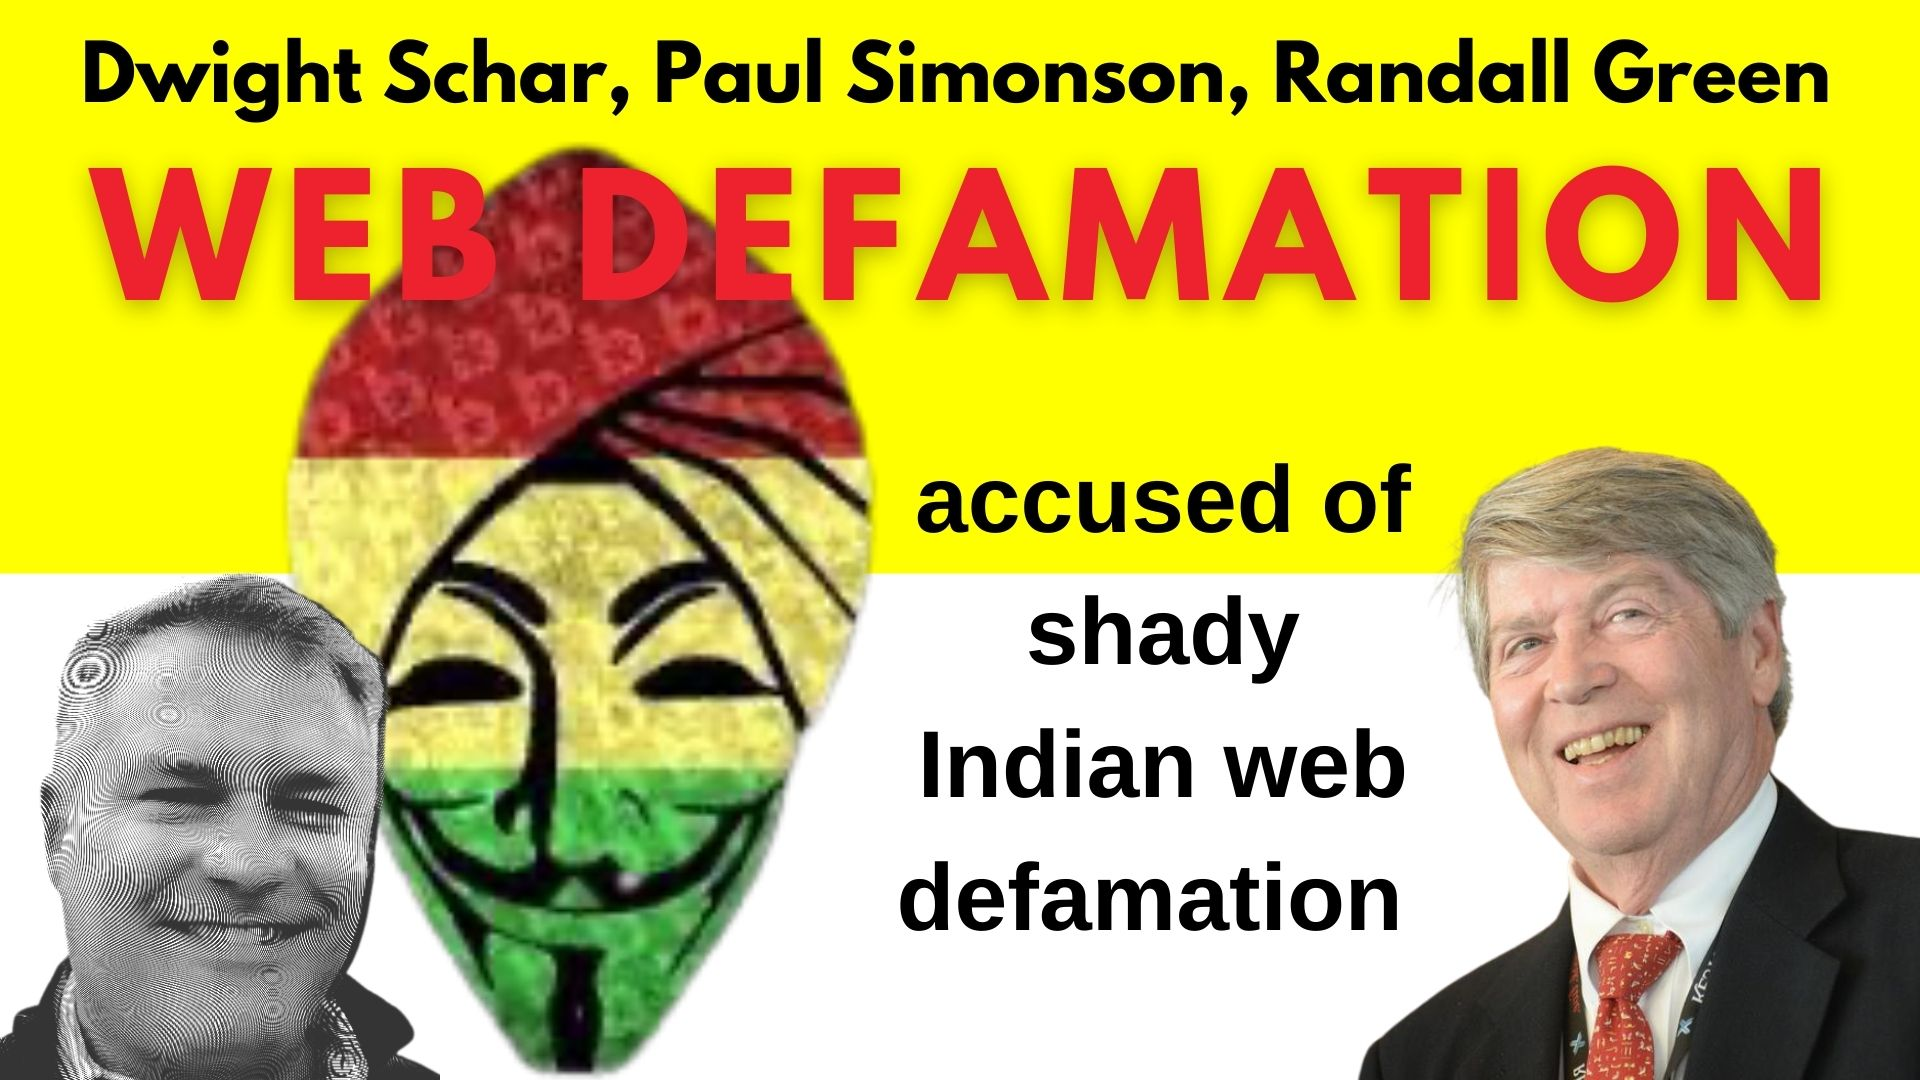 Dwight Schar's accused of shady Indian web defamation Randall Greene, Paul Simonson